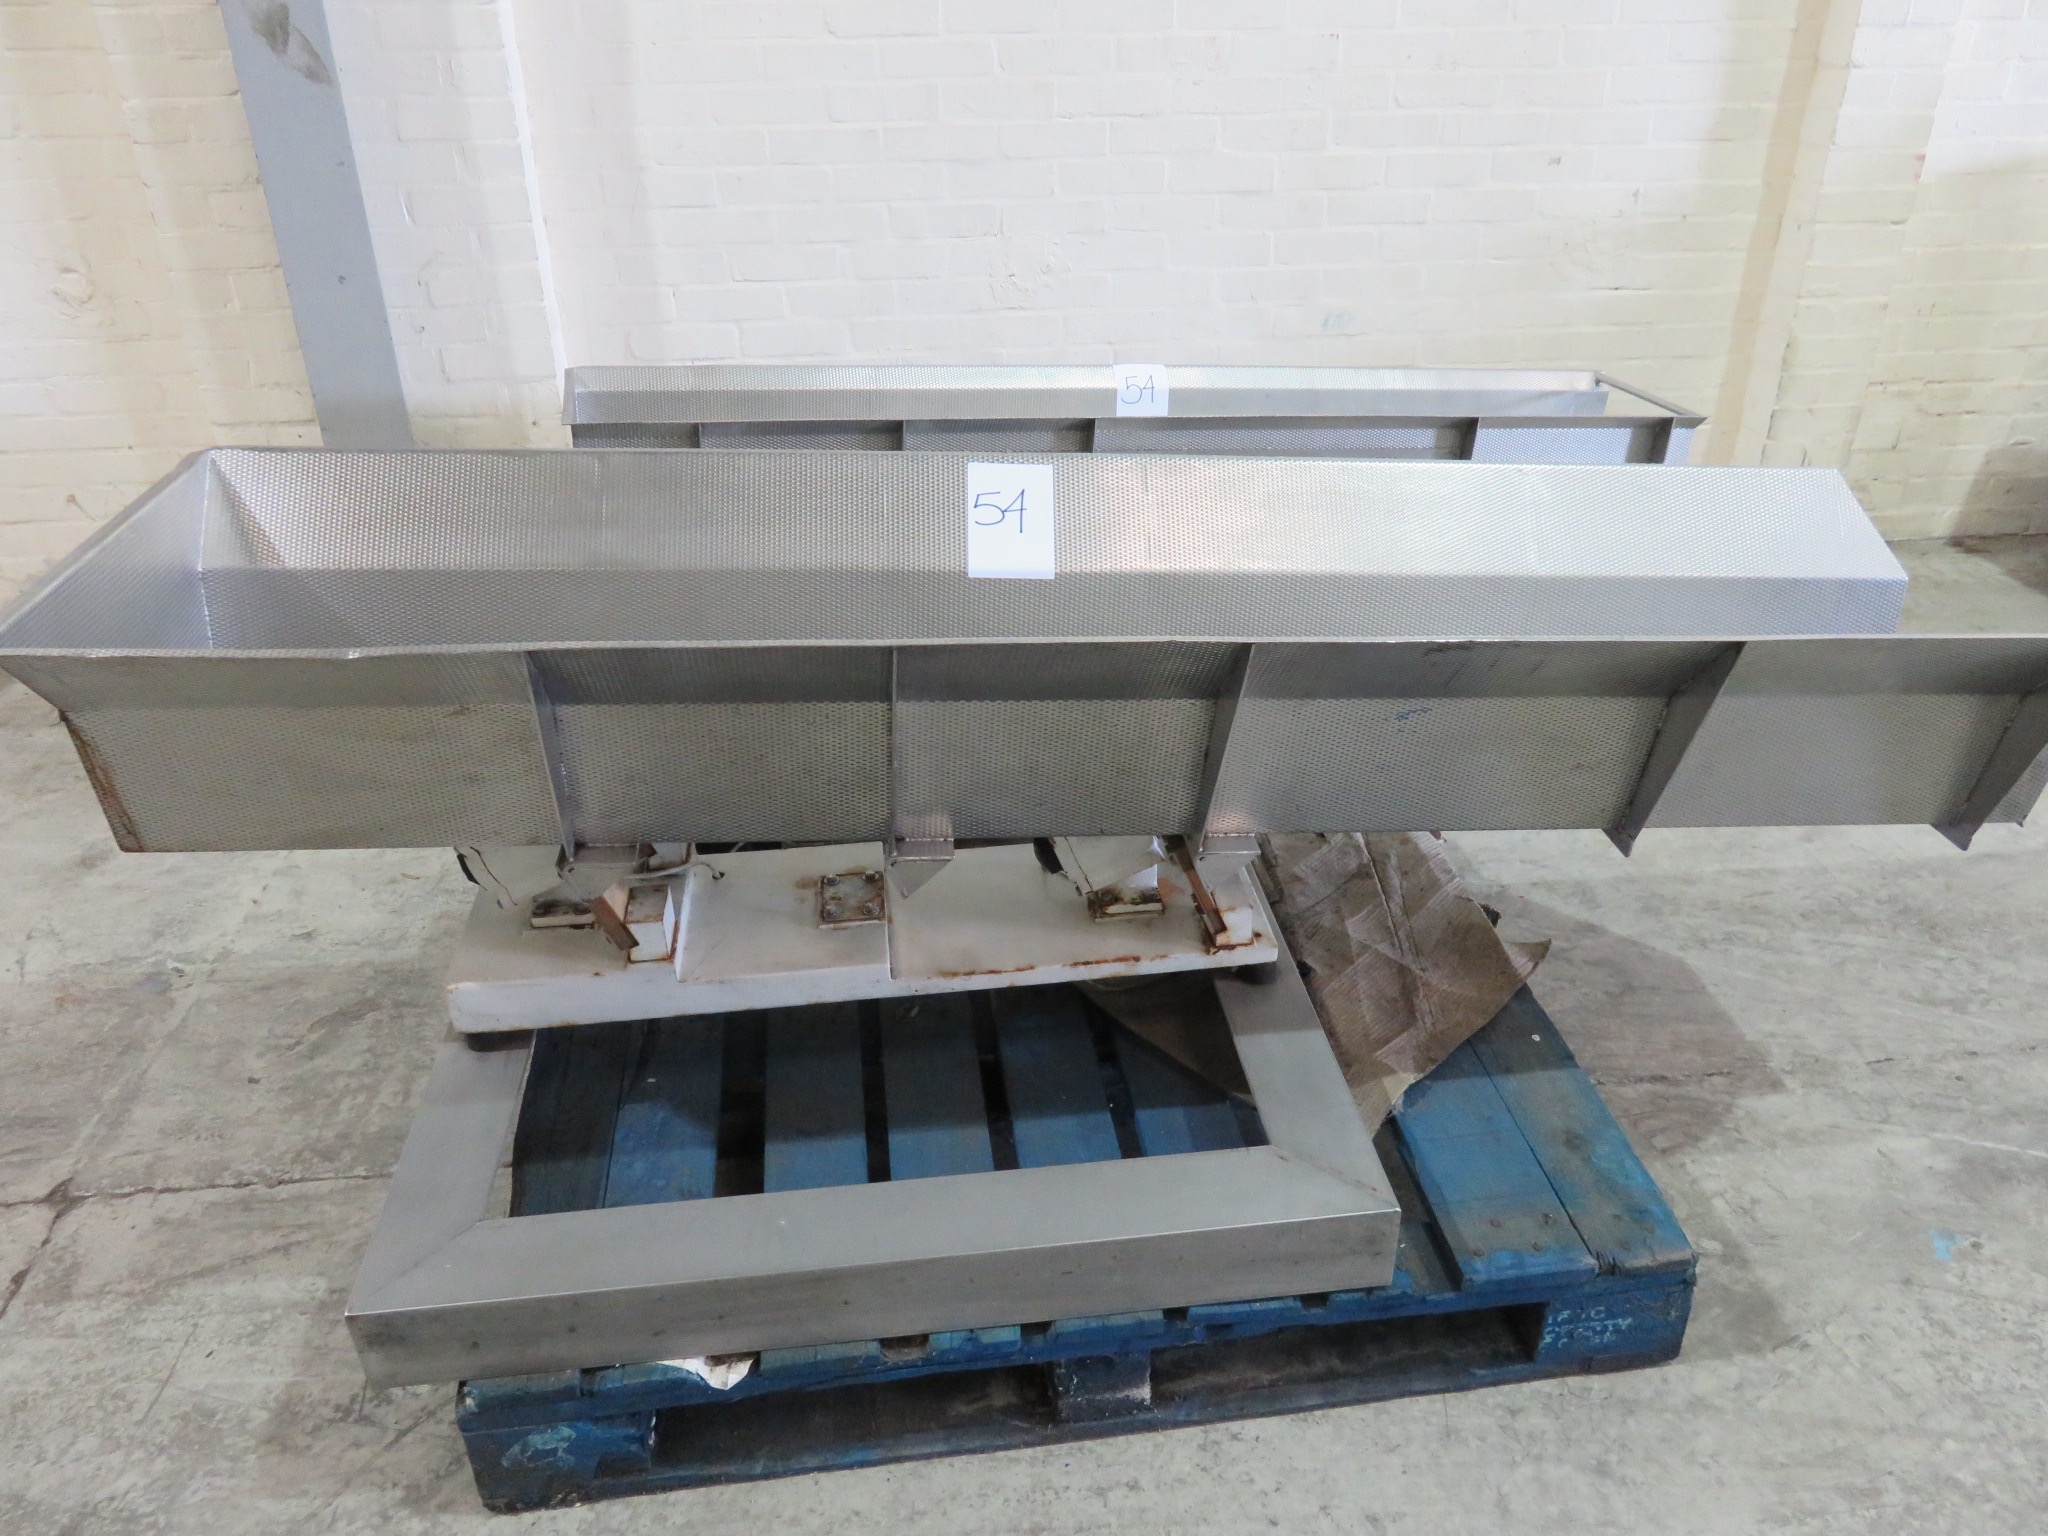 Lot 54 - 2 x Vibratory feed systems by Multipoint. S/s on S/s frames.LIFT OUT £10